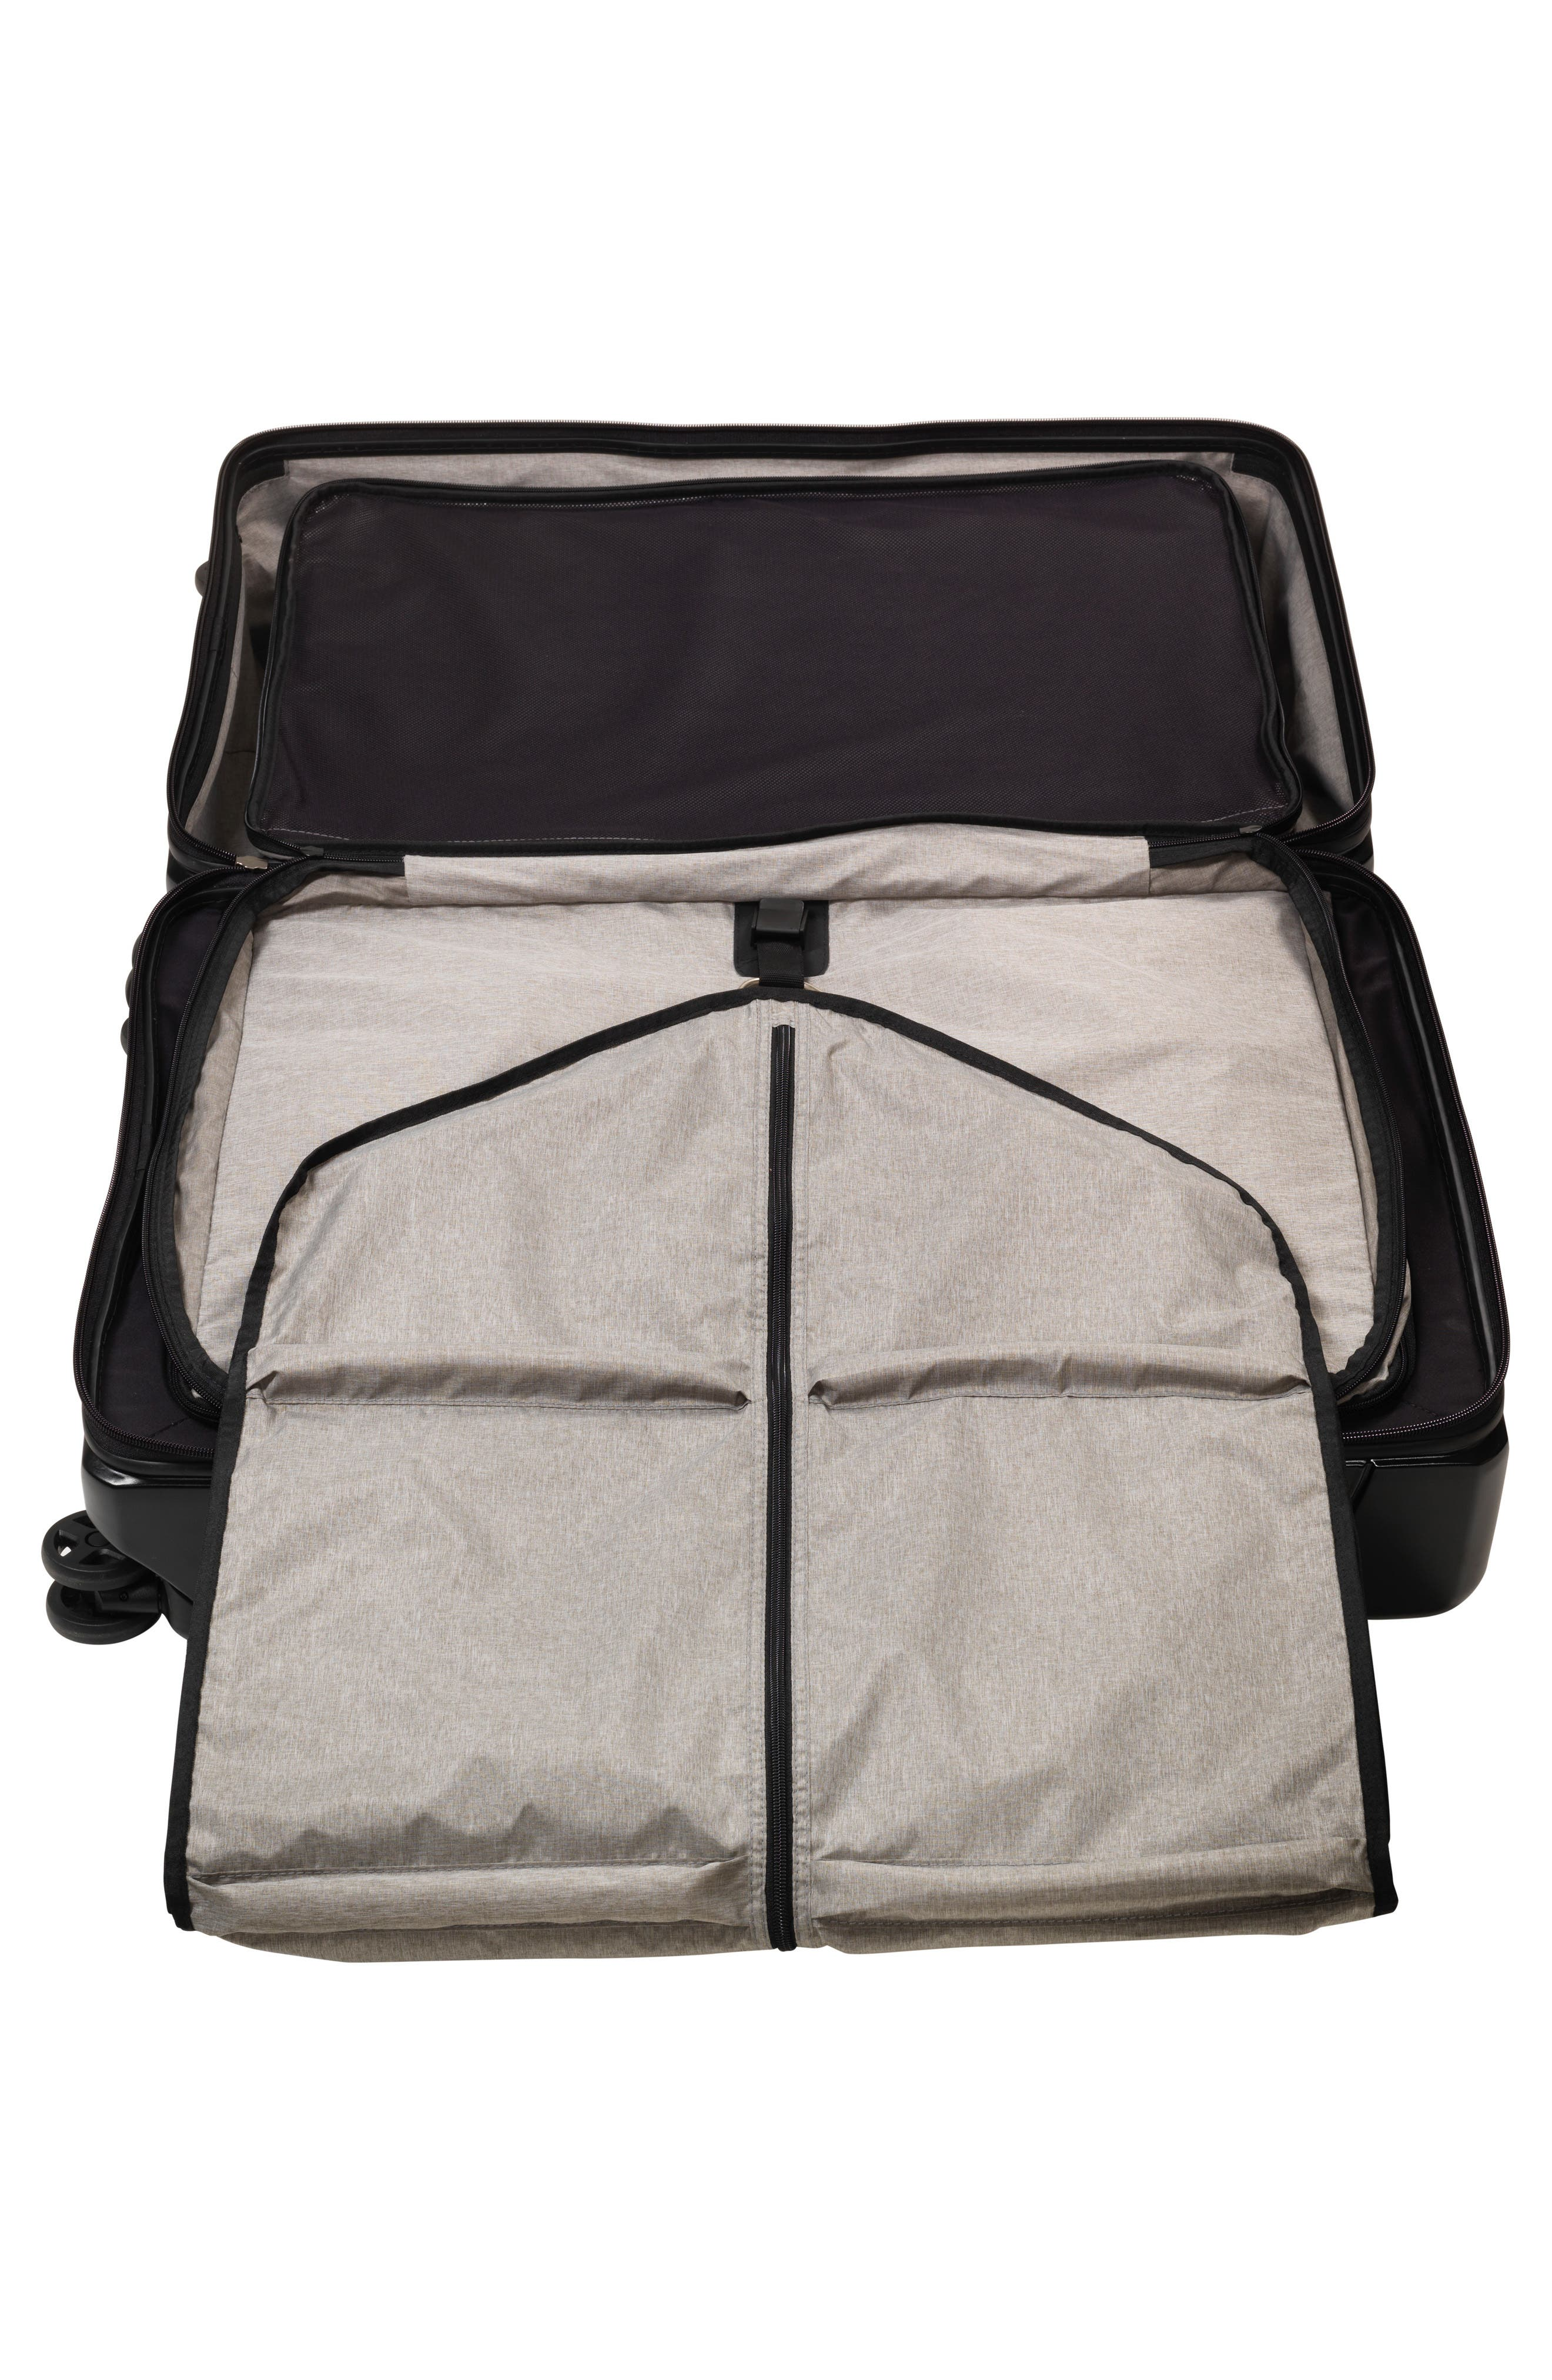 Lexicon Frequent Flyer 29-Inch Wheeled Suitcase,                             Alternate thumbnail 3, color,